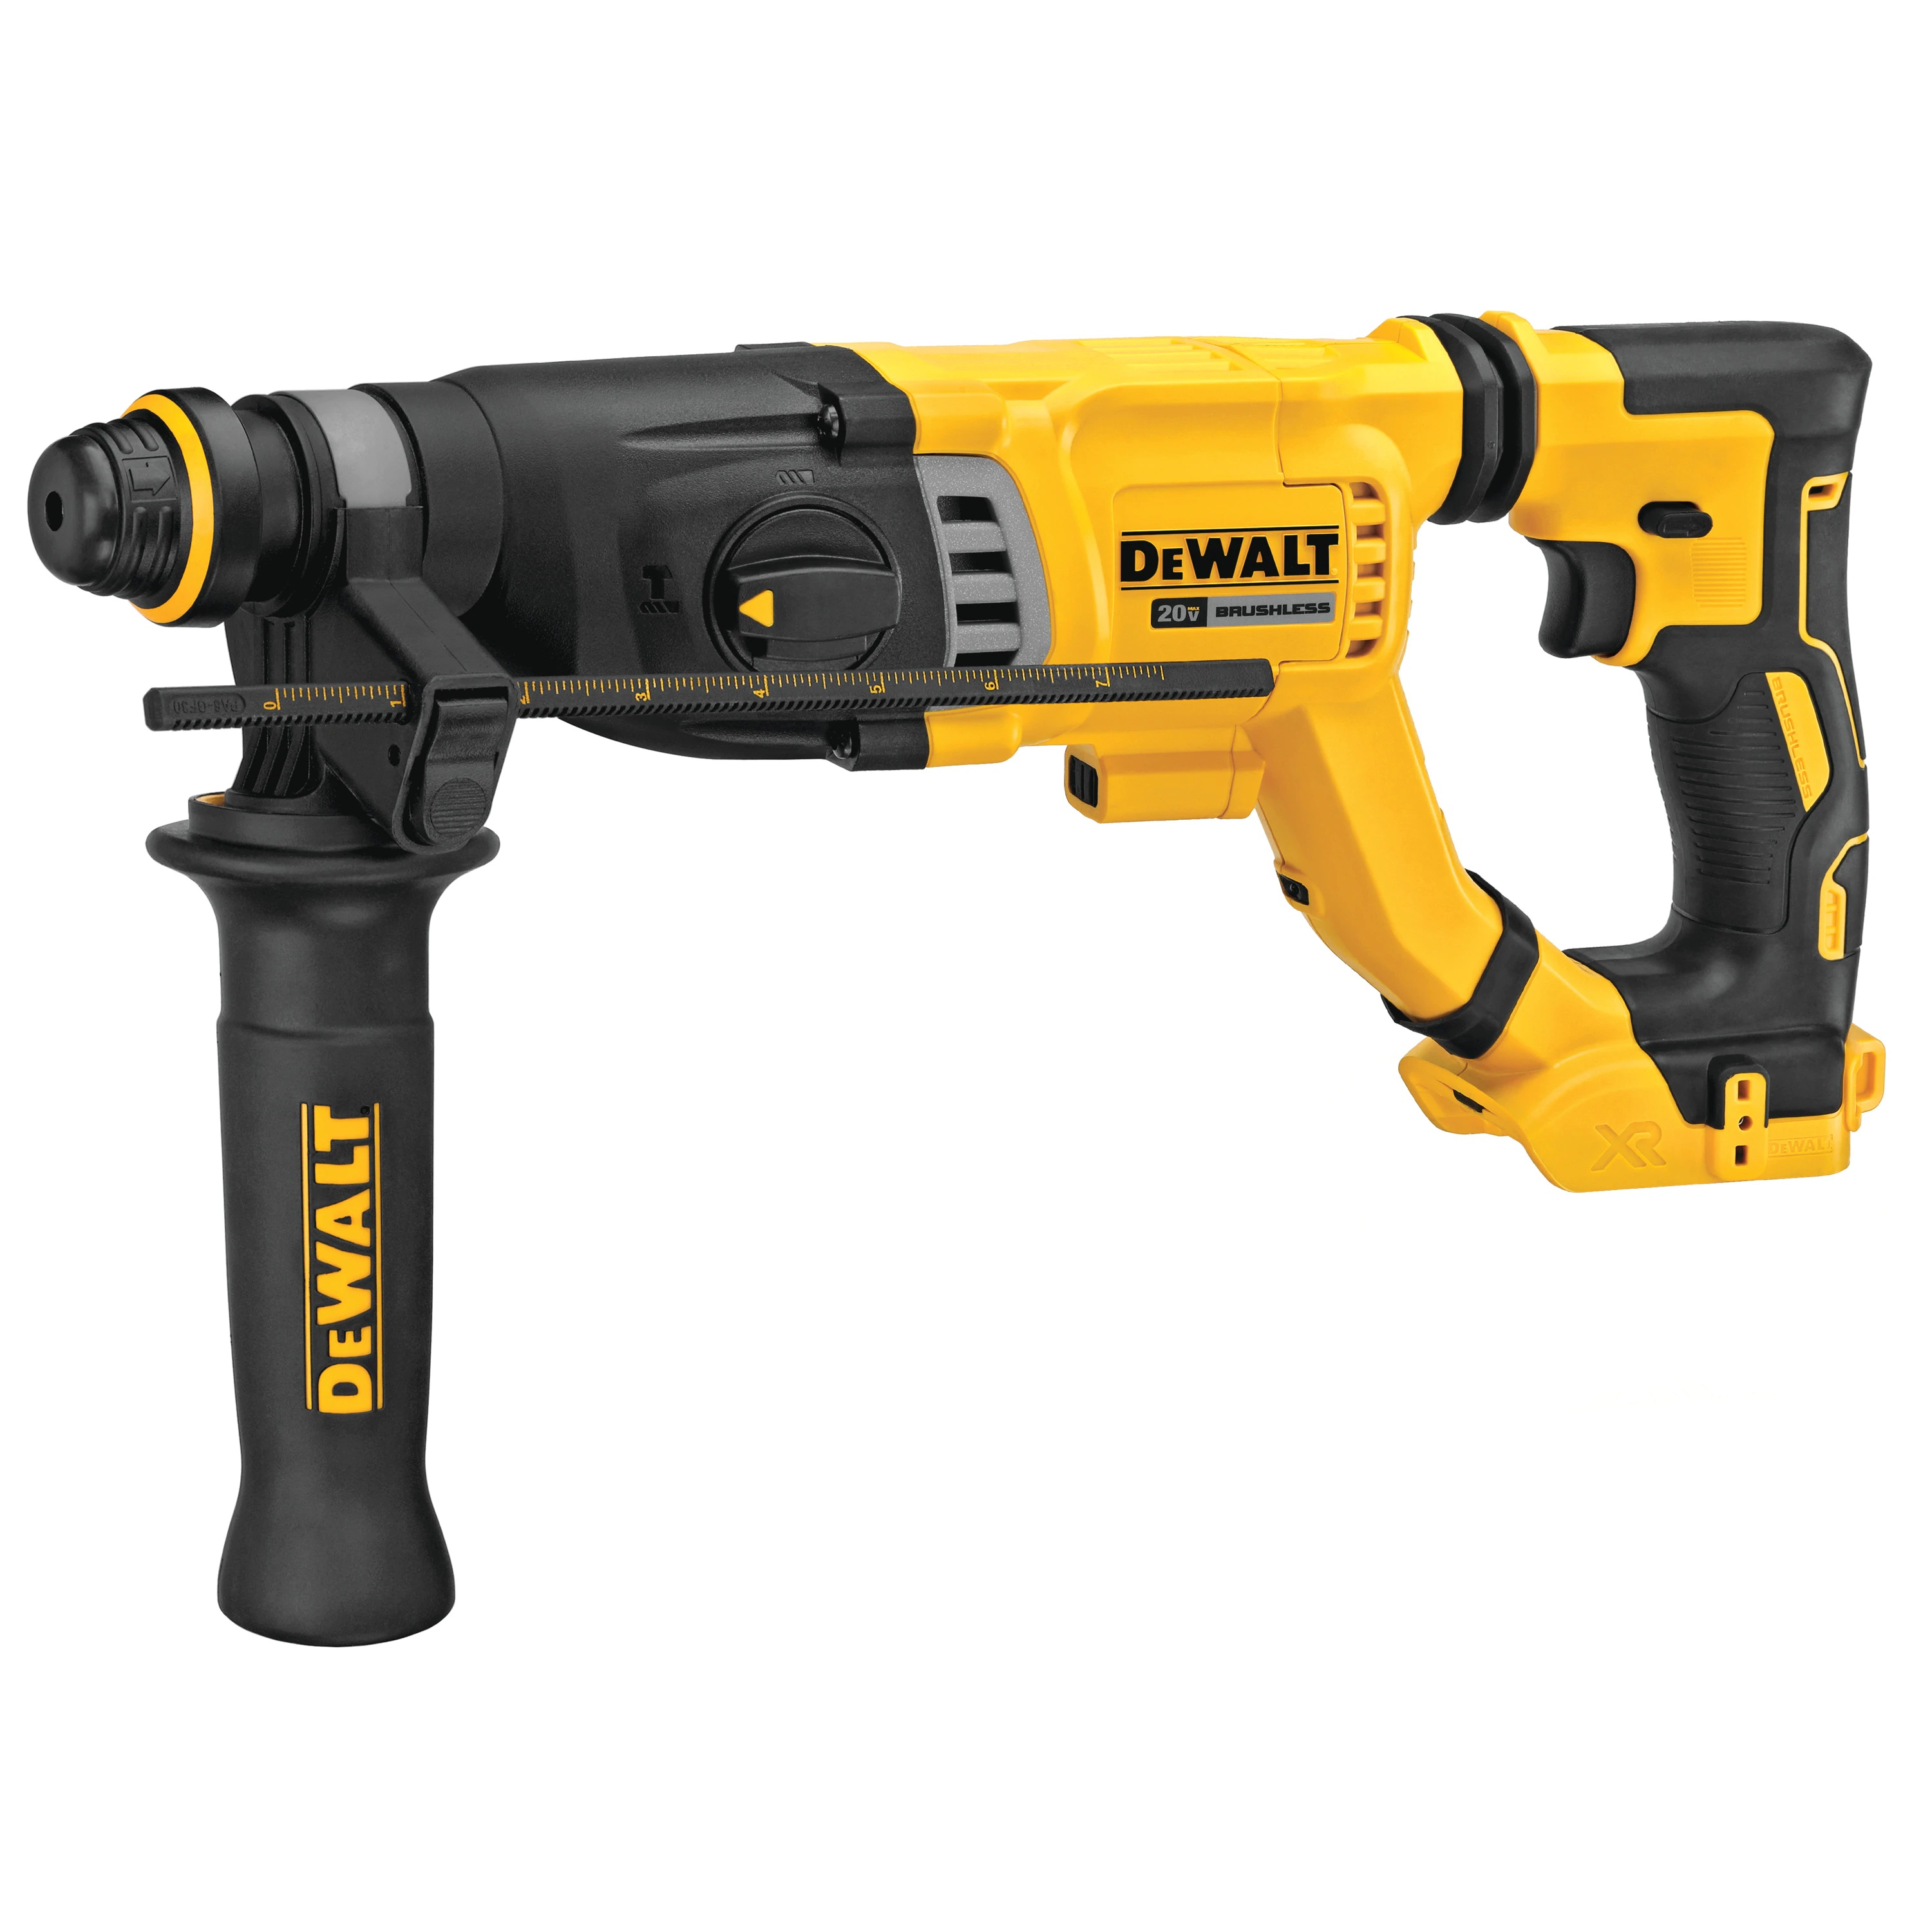 Hammer Drill - 20V MAX* 1-1/8 IN. Brushless Cordless SDS Plus D-Handle (TOOL ONLY) - Rotary & Demolition Hammer Drills